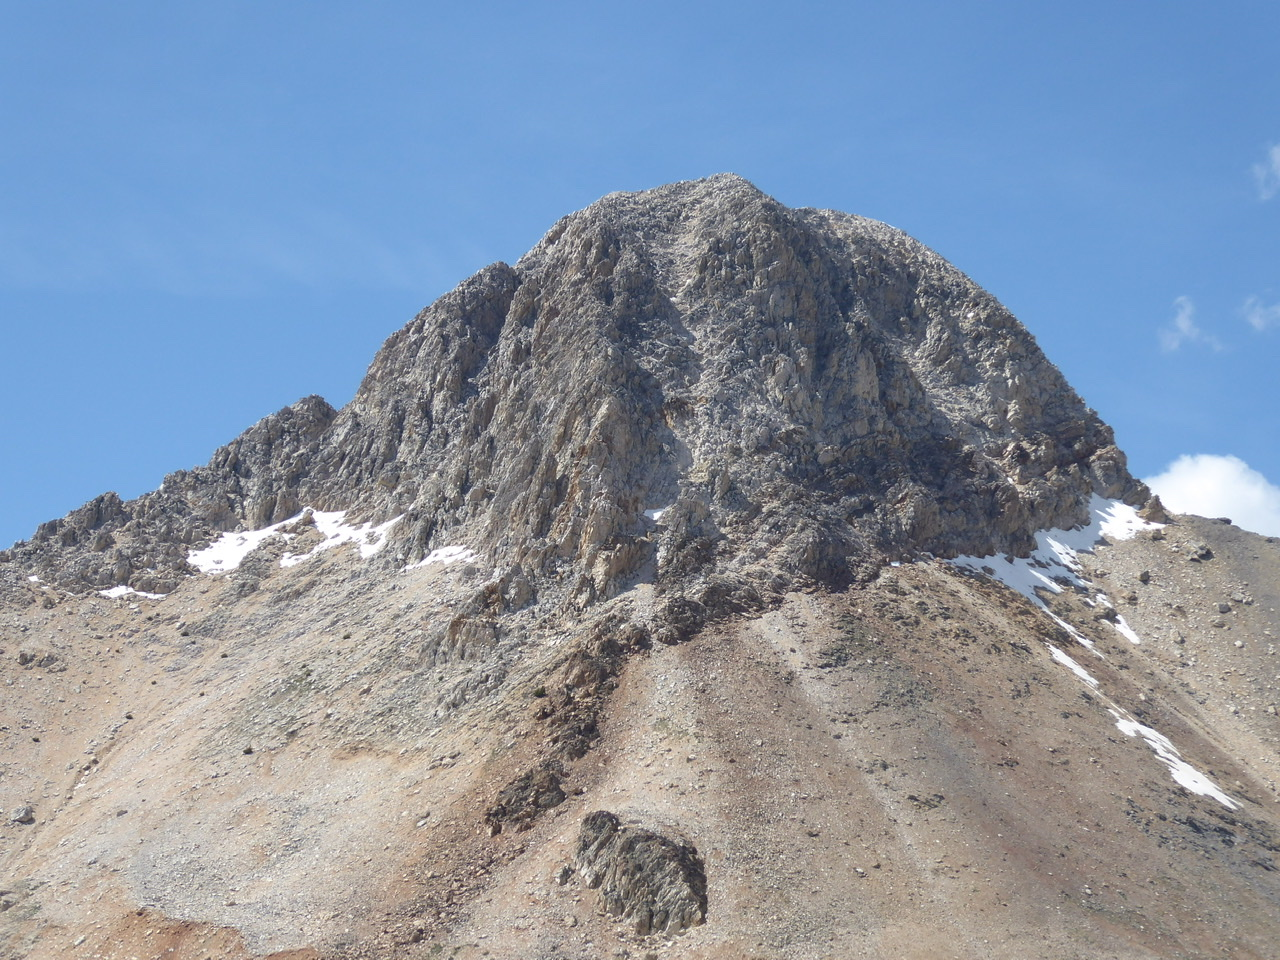 Bell Mountain viewed from the Clapper. The gully in the center of the face (just right of the south ridge) is the line used to ascend and descend this side of the peak. Steve Grantham Photo